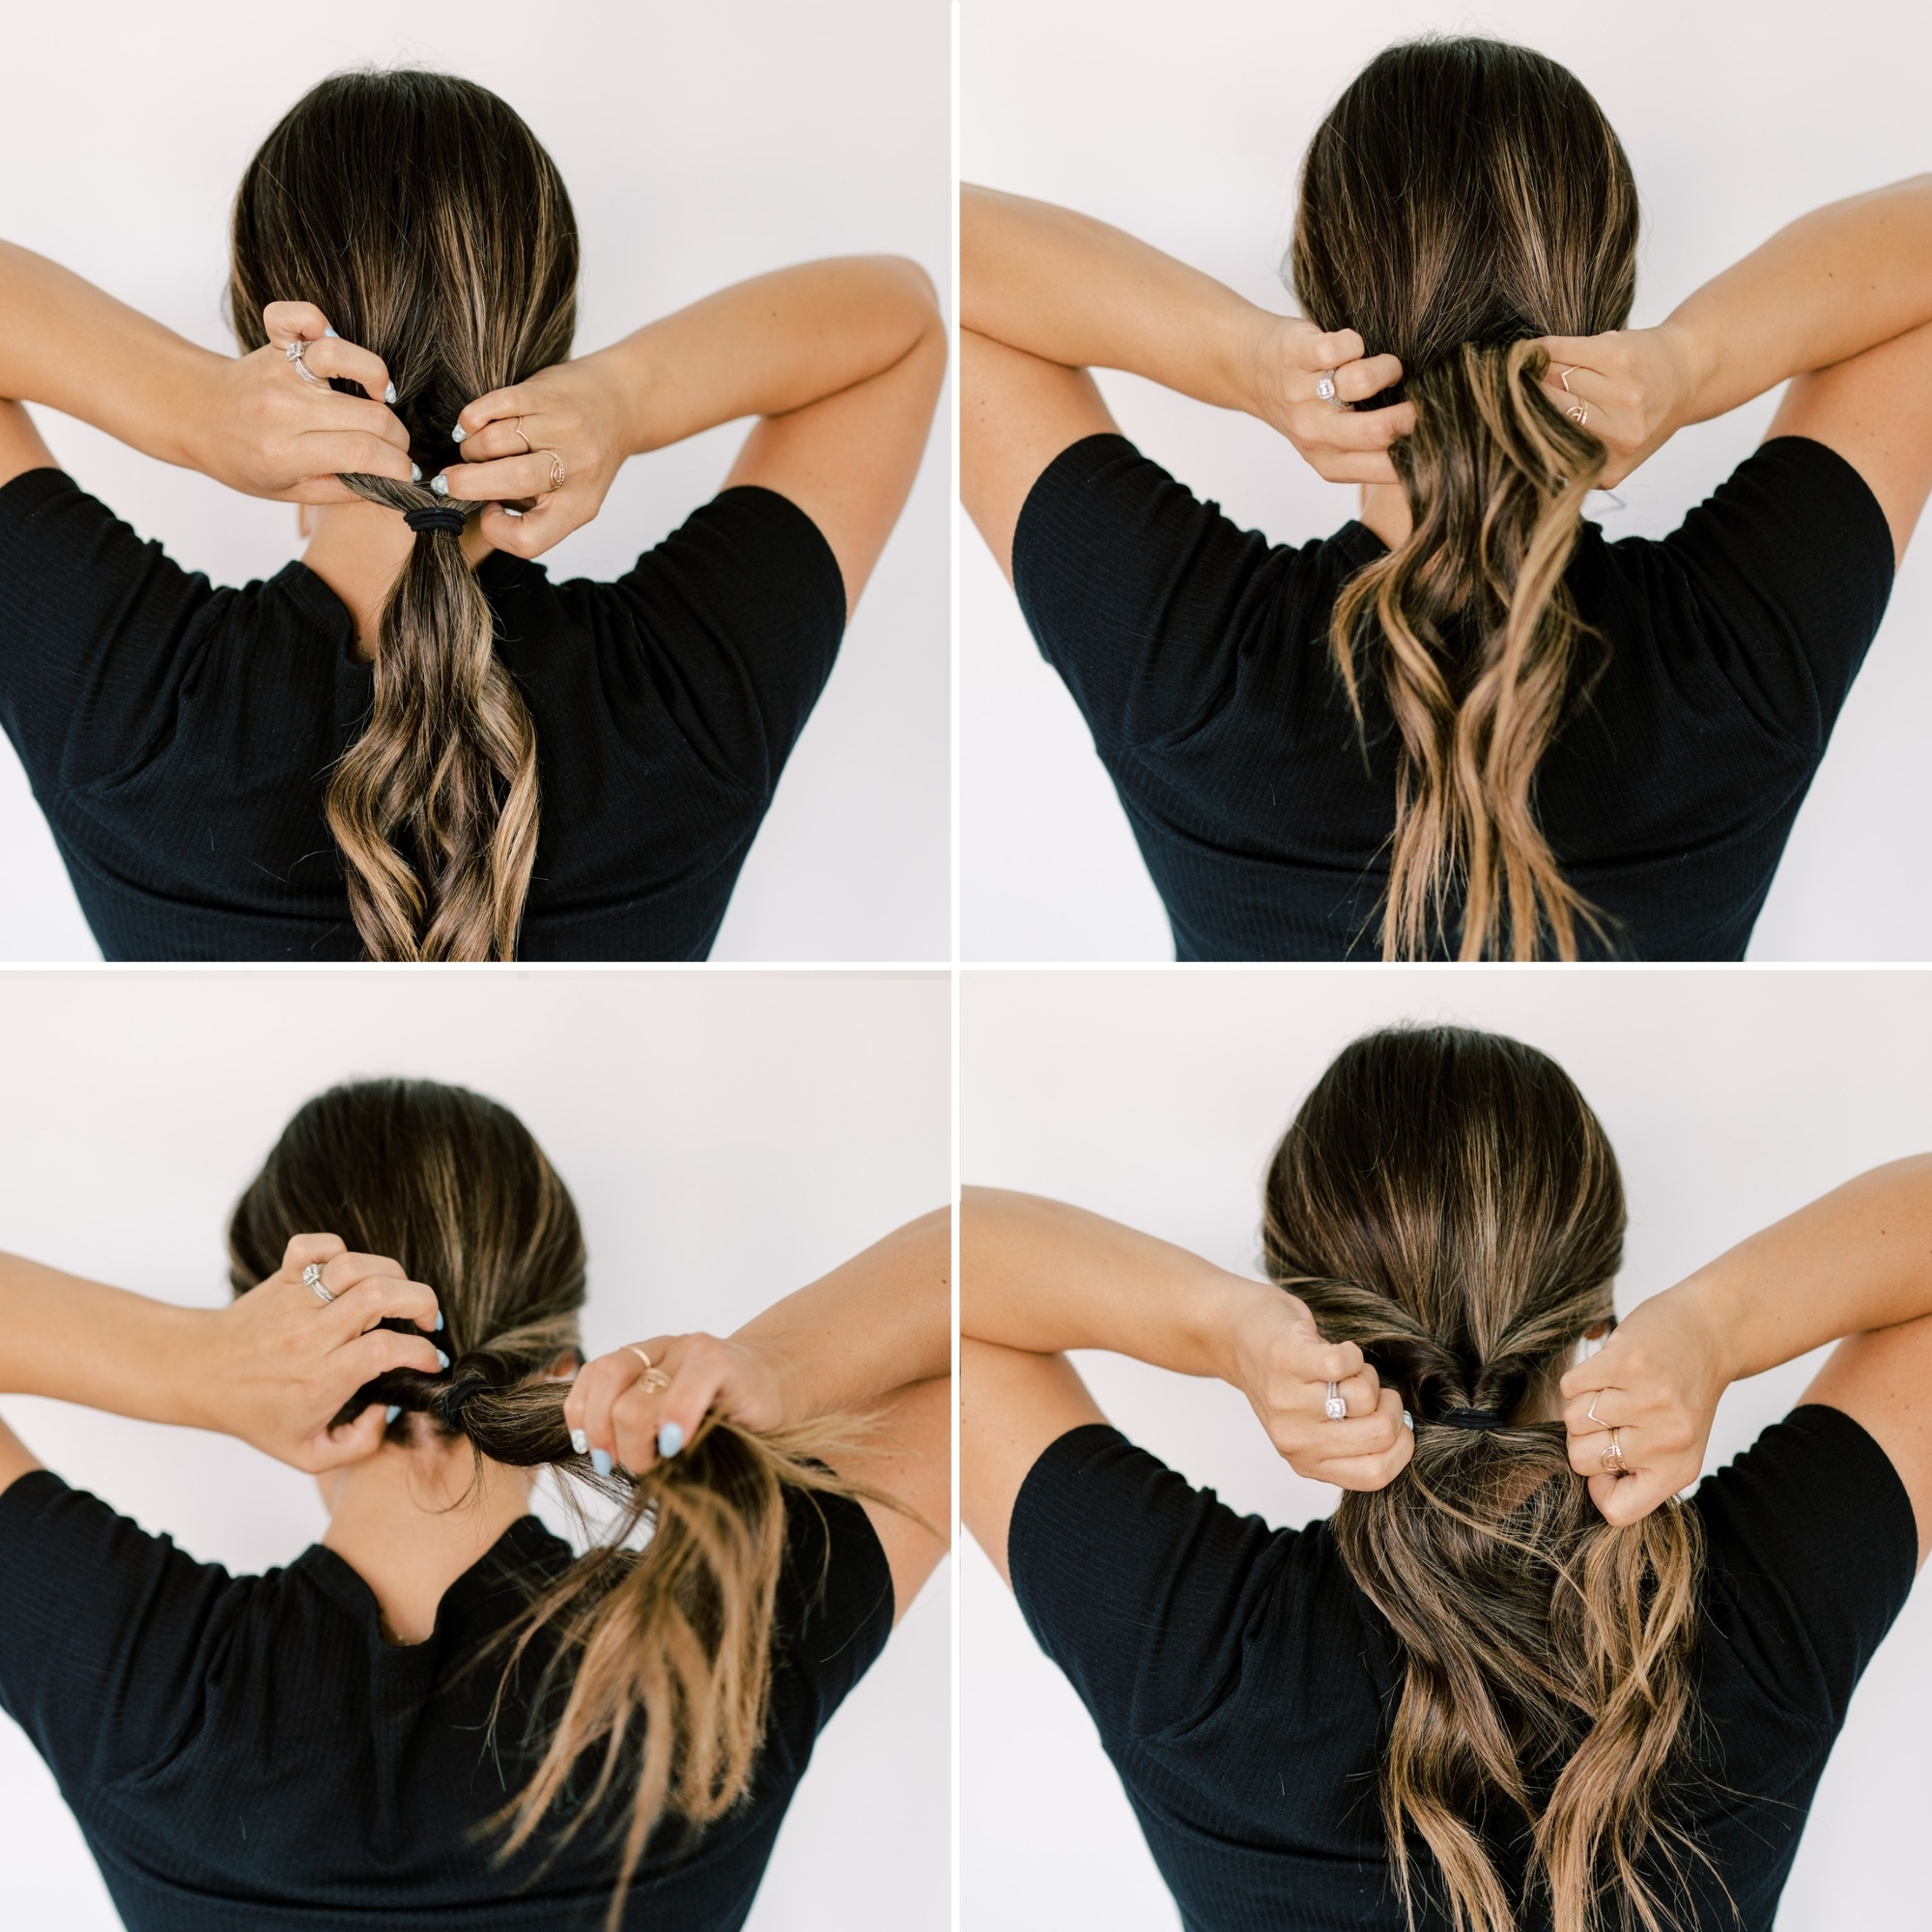 try this quick and easy pony tail hair style that is trending! www.twistmepretty.com